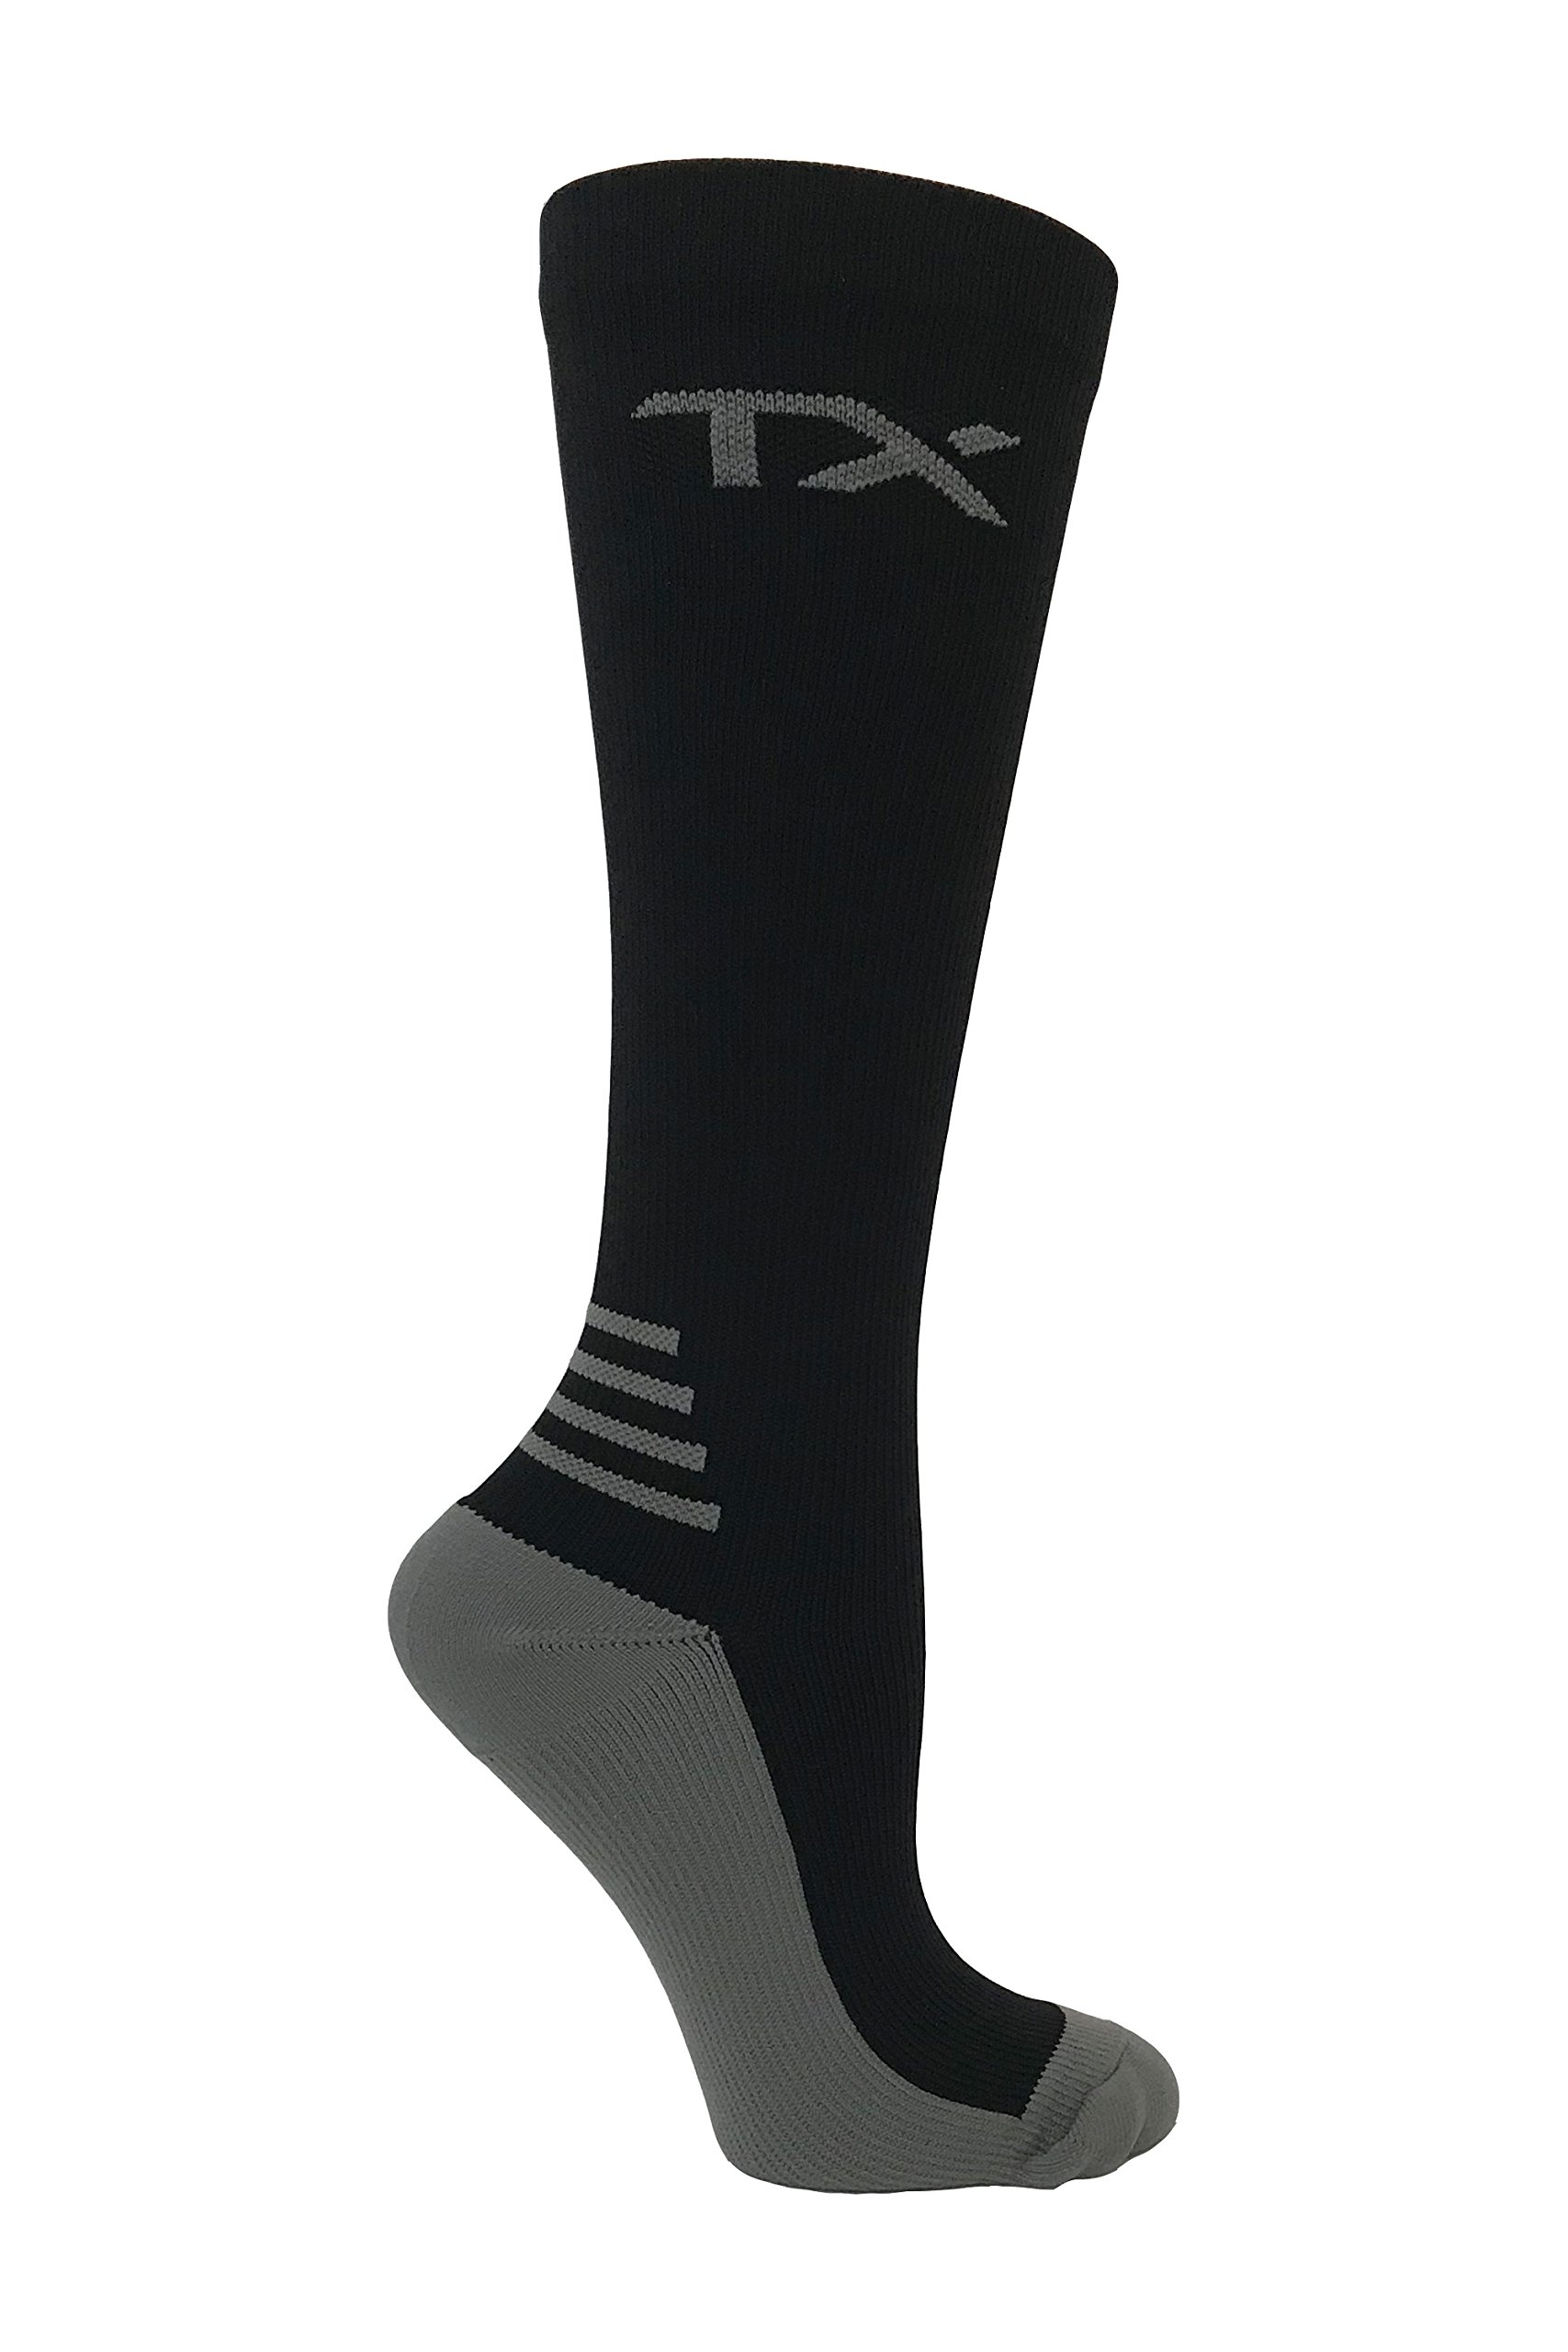 TX Unisex Athletic Compression Socks 20-30 mmHg Graduated Support – Moisture Wicking for Cool Comfort – Cushioned Soles – For Runners, Nurses, Diabetics & Improves Circulation